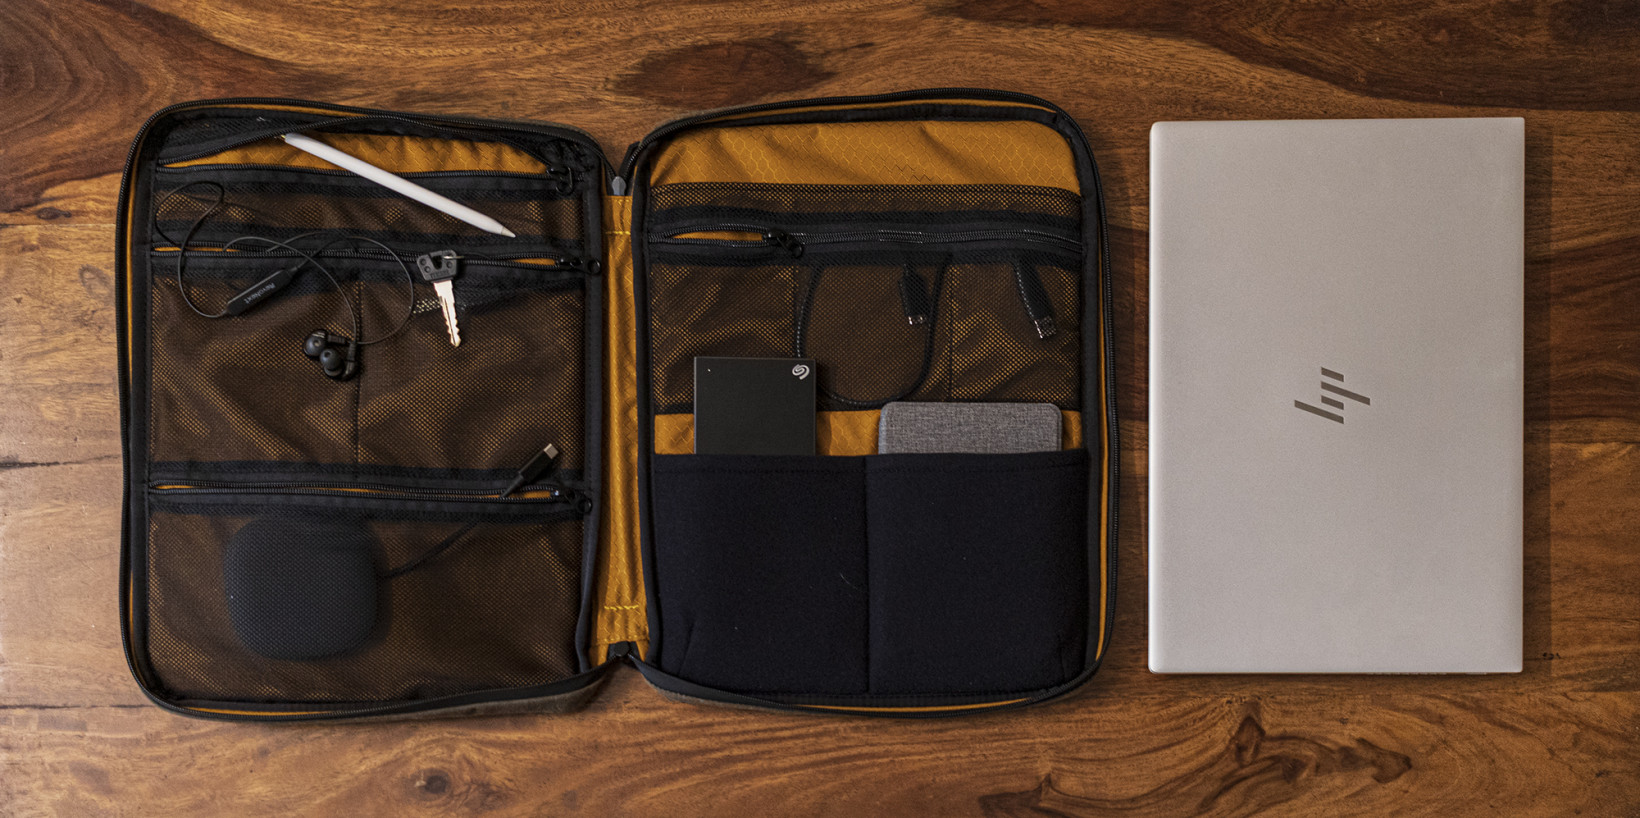 The Tech Folio's main compartment has mesh pockets so you can see where your smaller items are